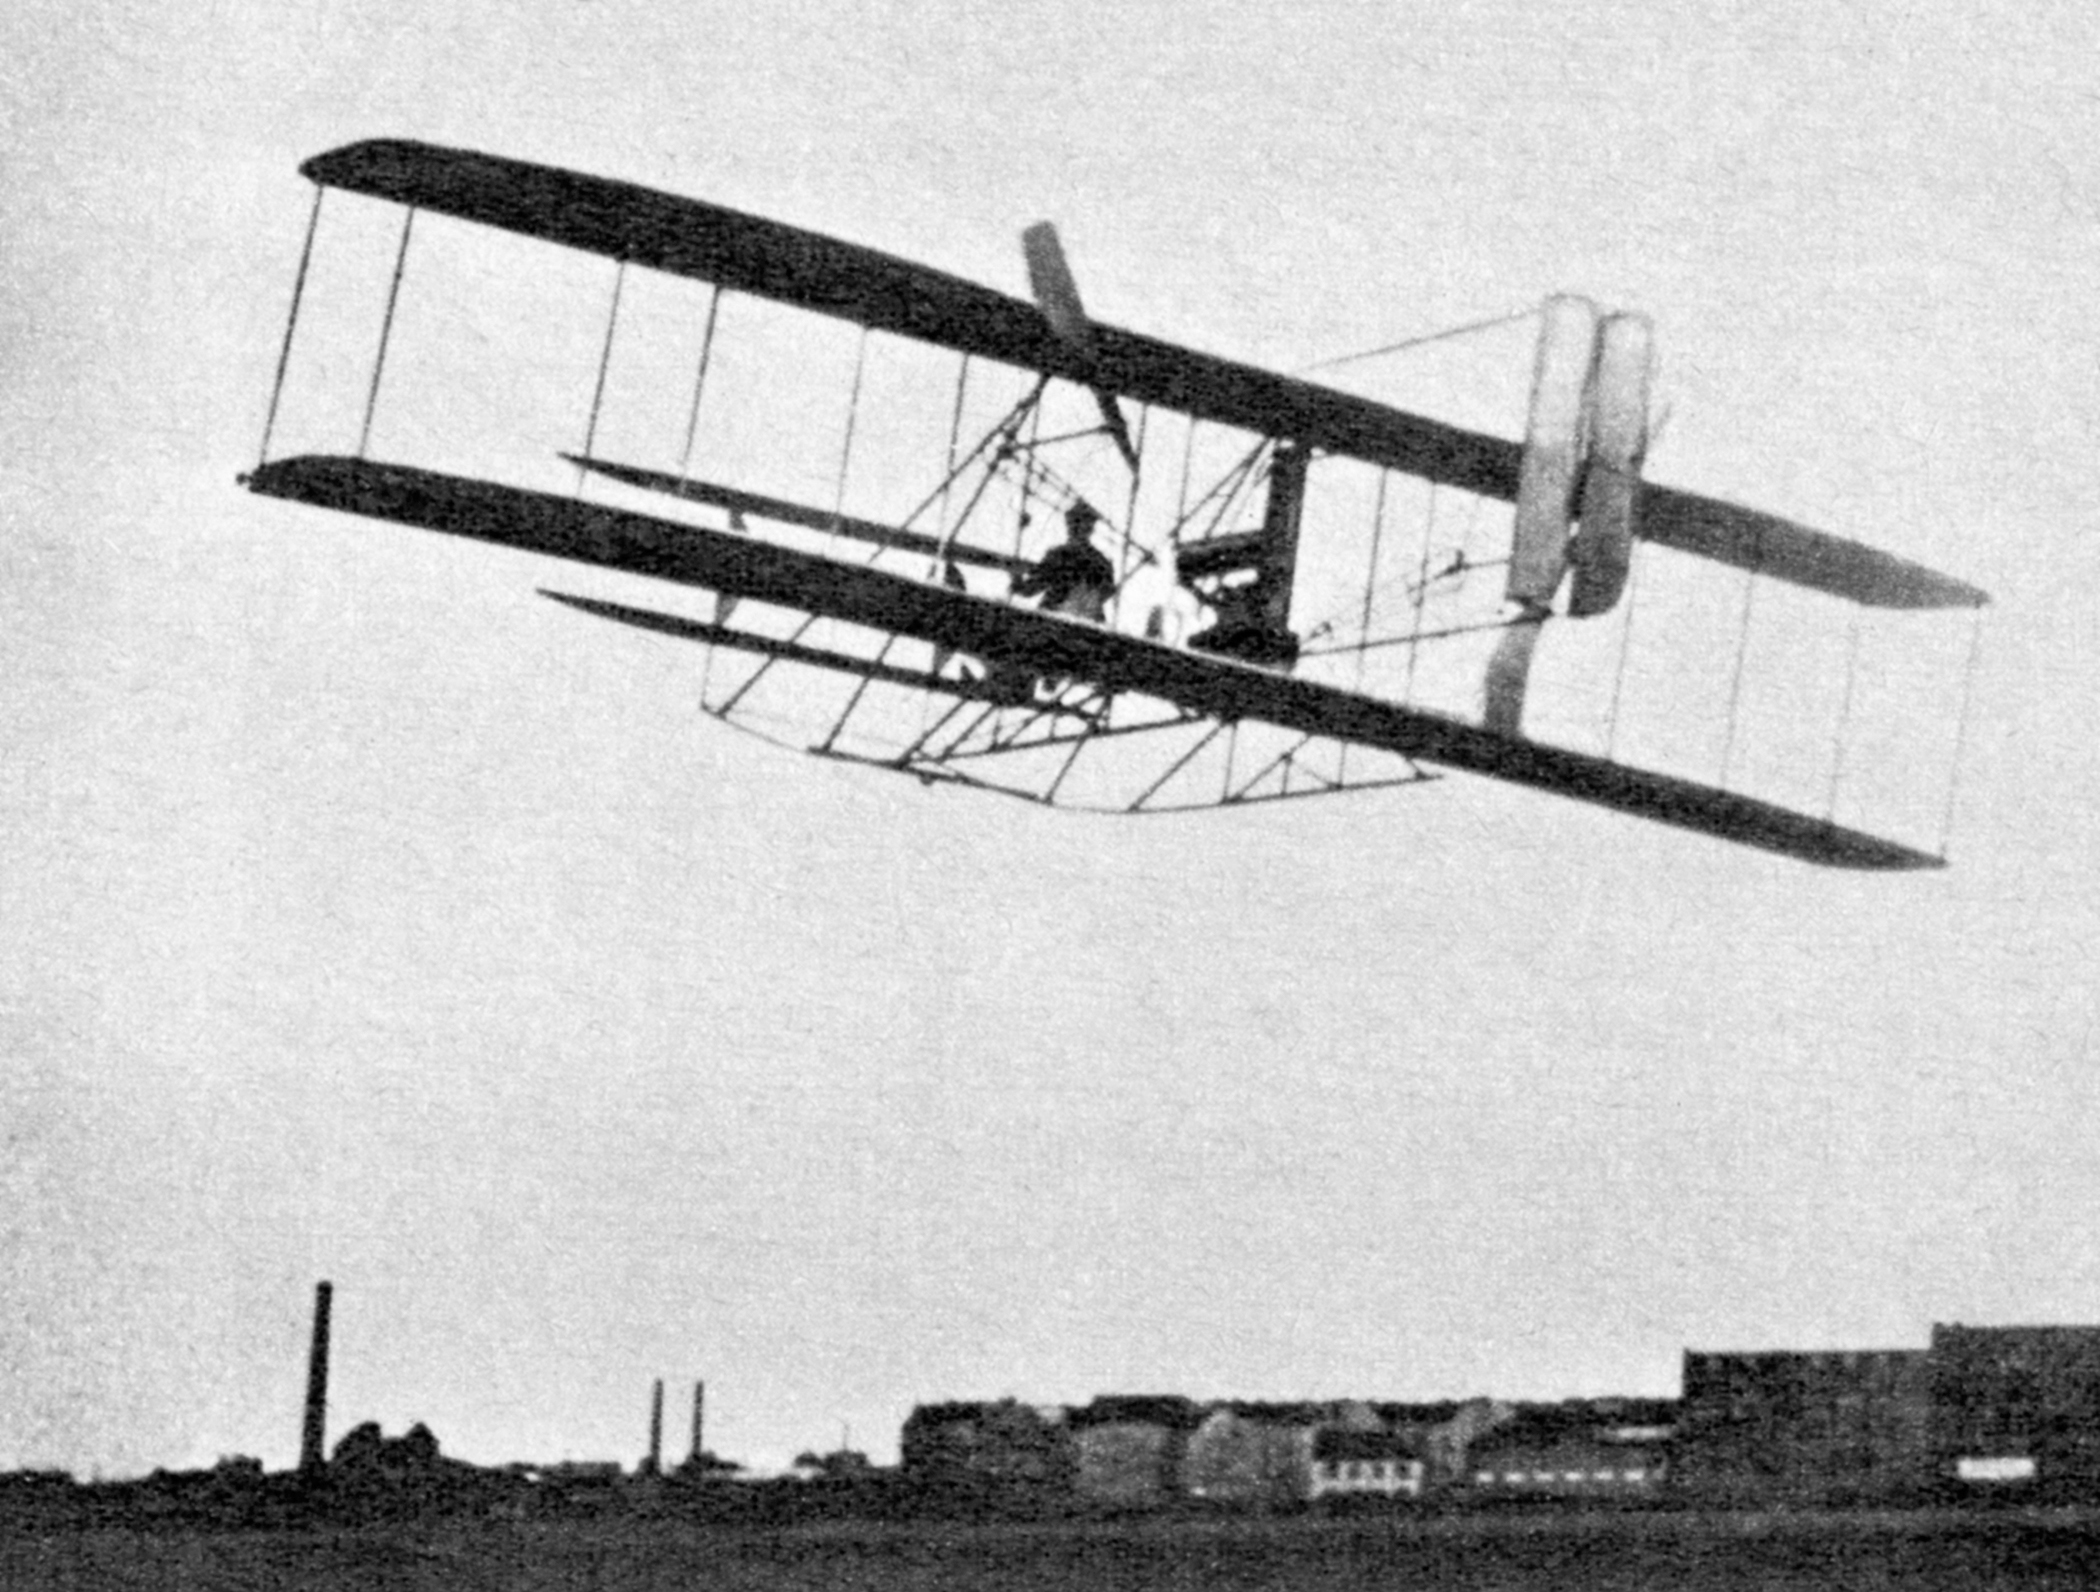 Wright Flyer I of Wilbur and Orville Wright, Kitty Hawk, North Carolina, 1903